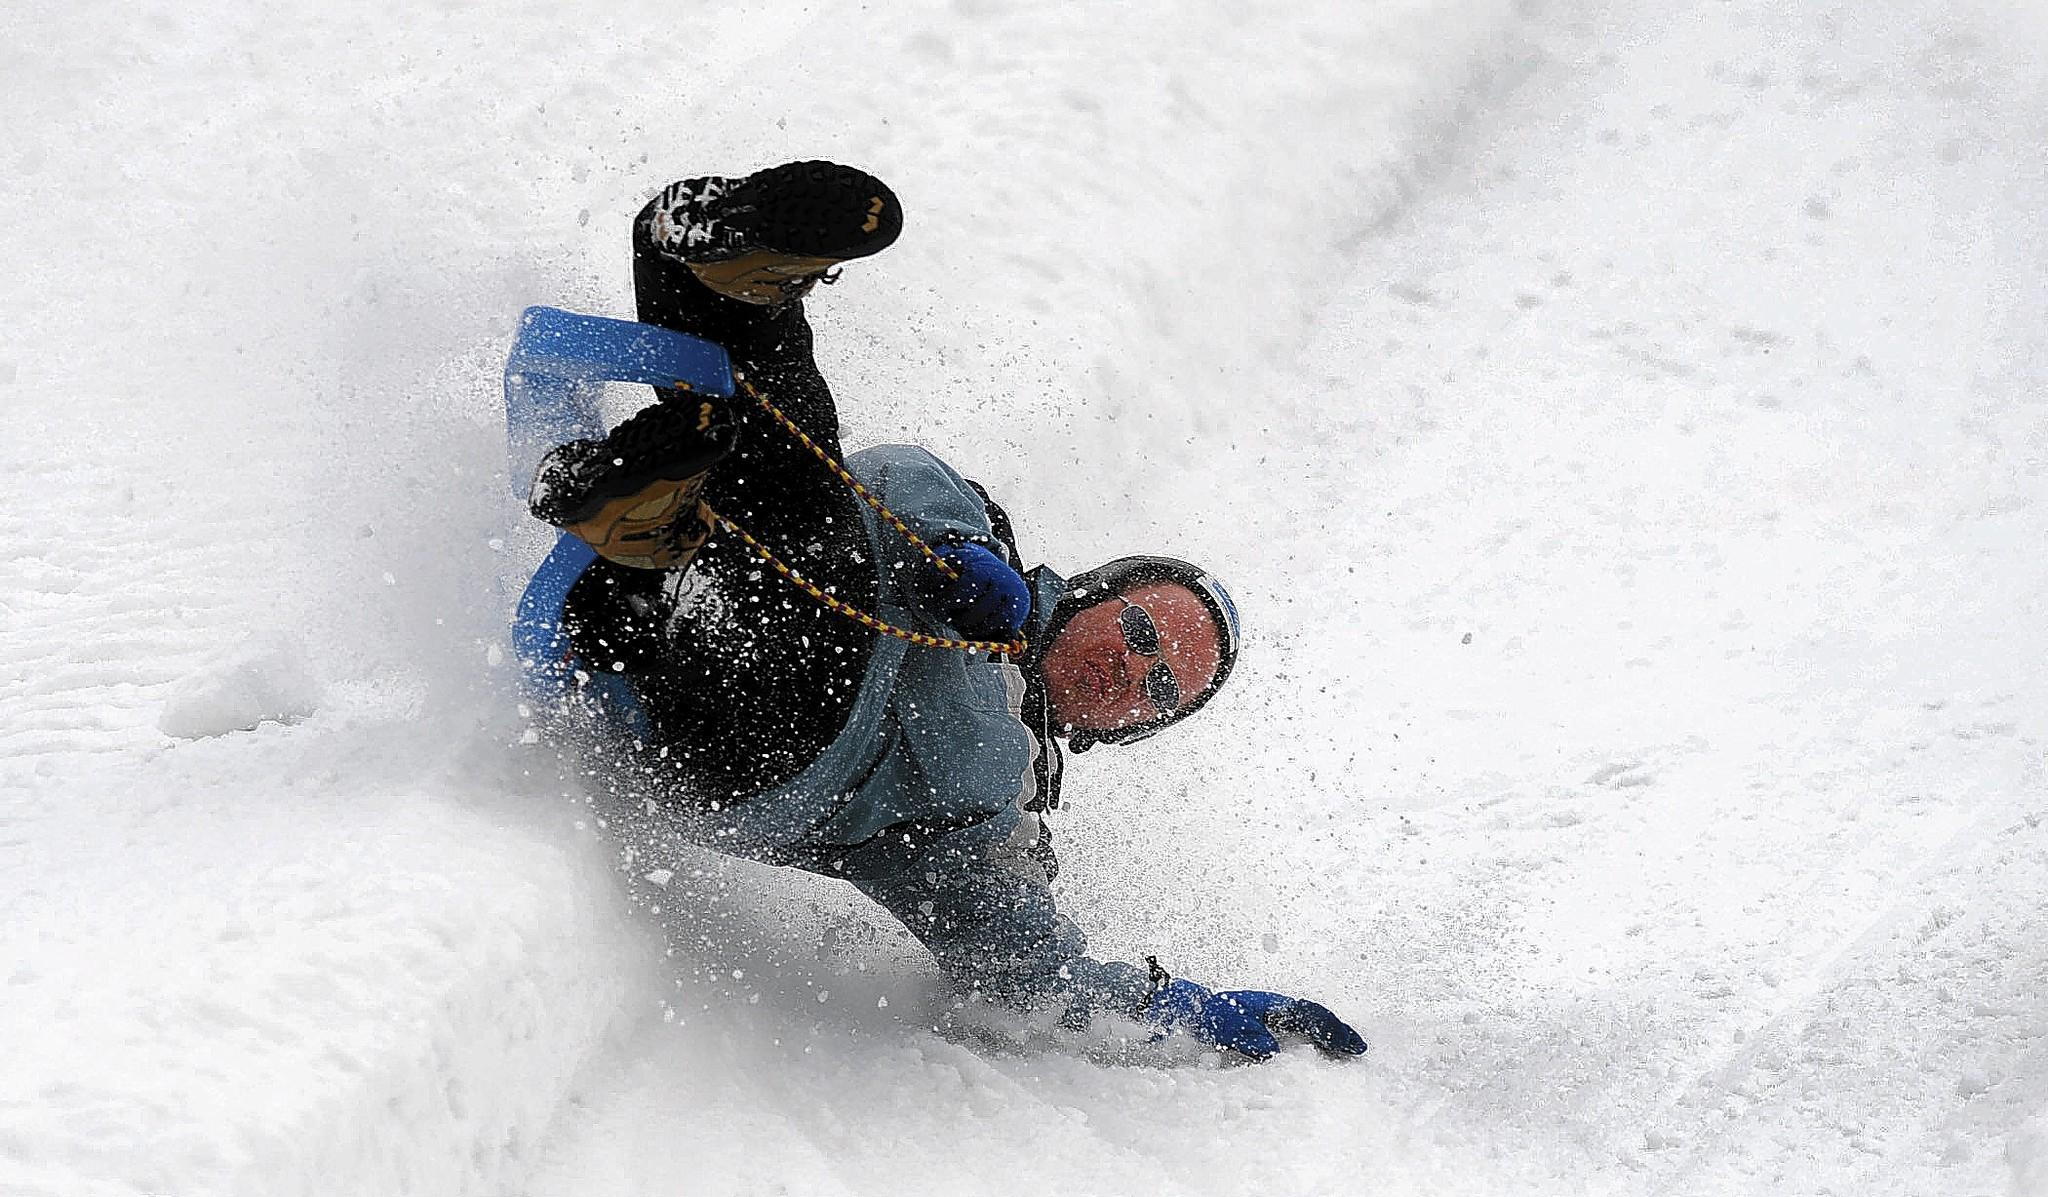 Robert Richardson of Nazareth hits a bank during the USA Luge Challenge at Blue Mountain Resort during their annual Winter Festival last year.